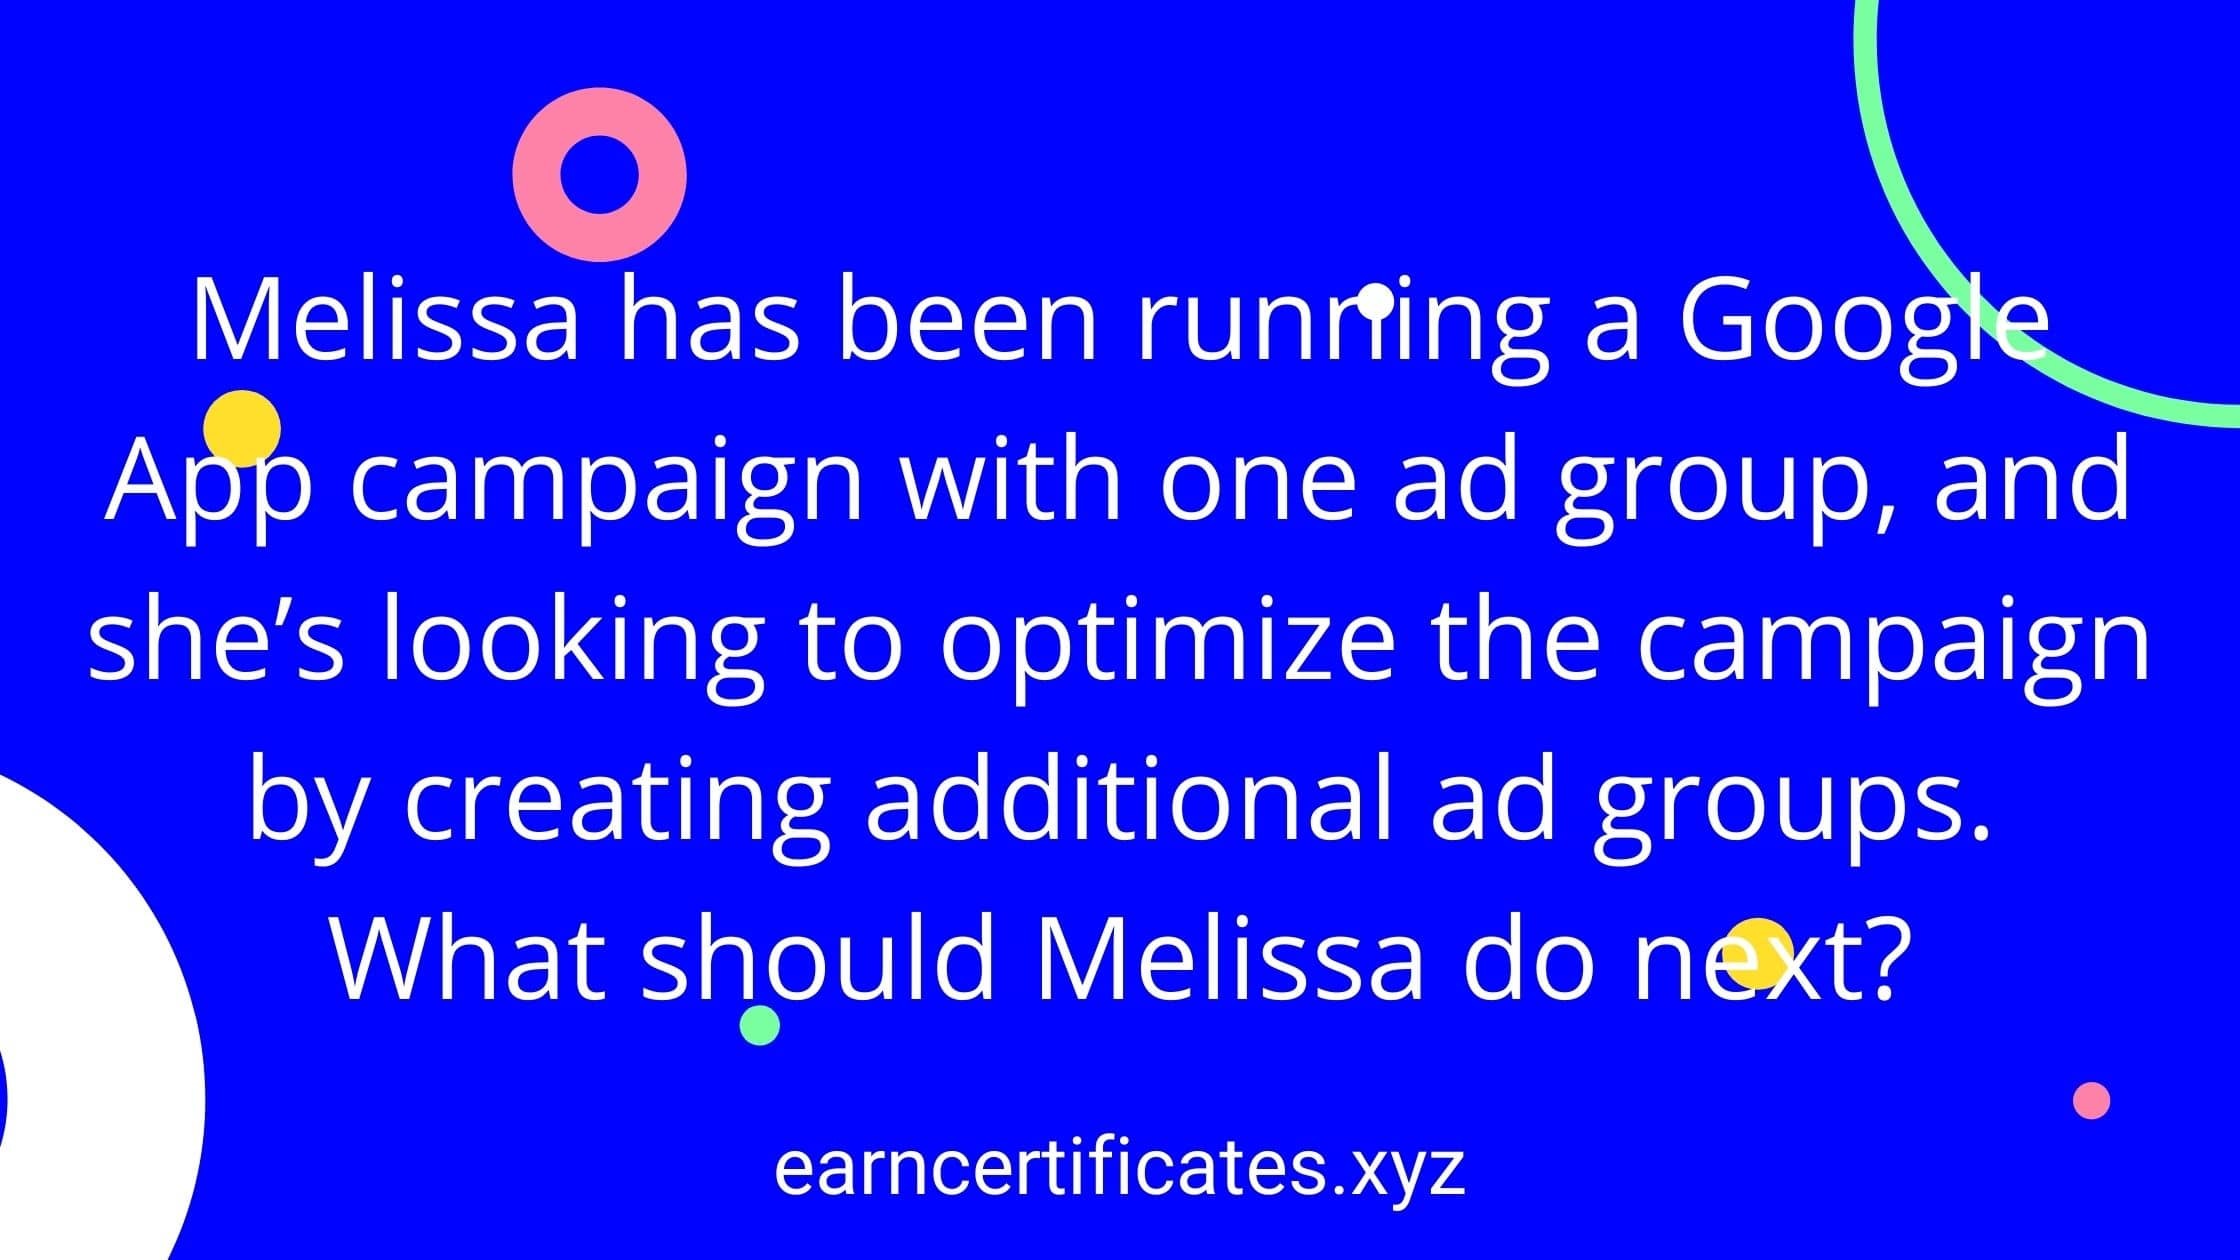 Melissa has been running a Google App campaign with one ad group, and she's looking to optimize the campaign by creating additional ad groups. What should Melissa do next?